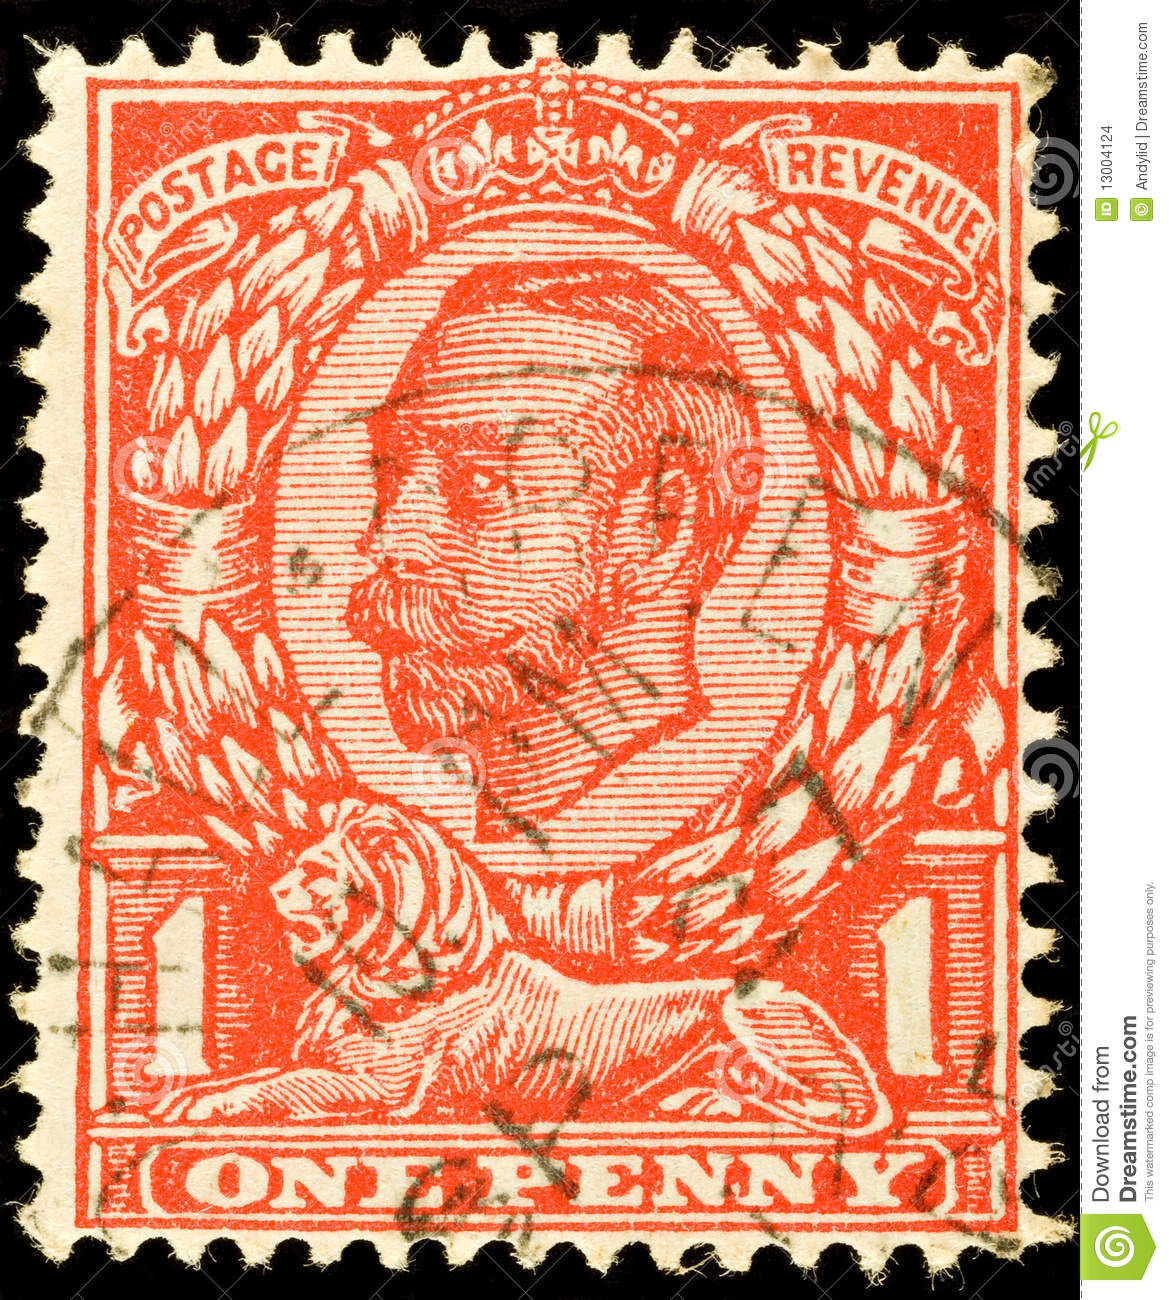 Vintage British Postage Stamp Stock Images  Image 13004124